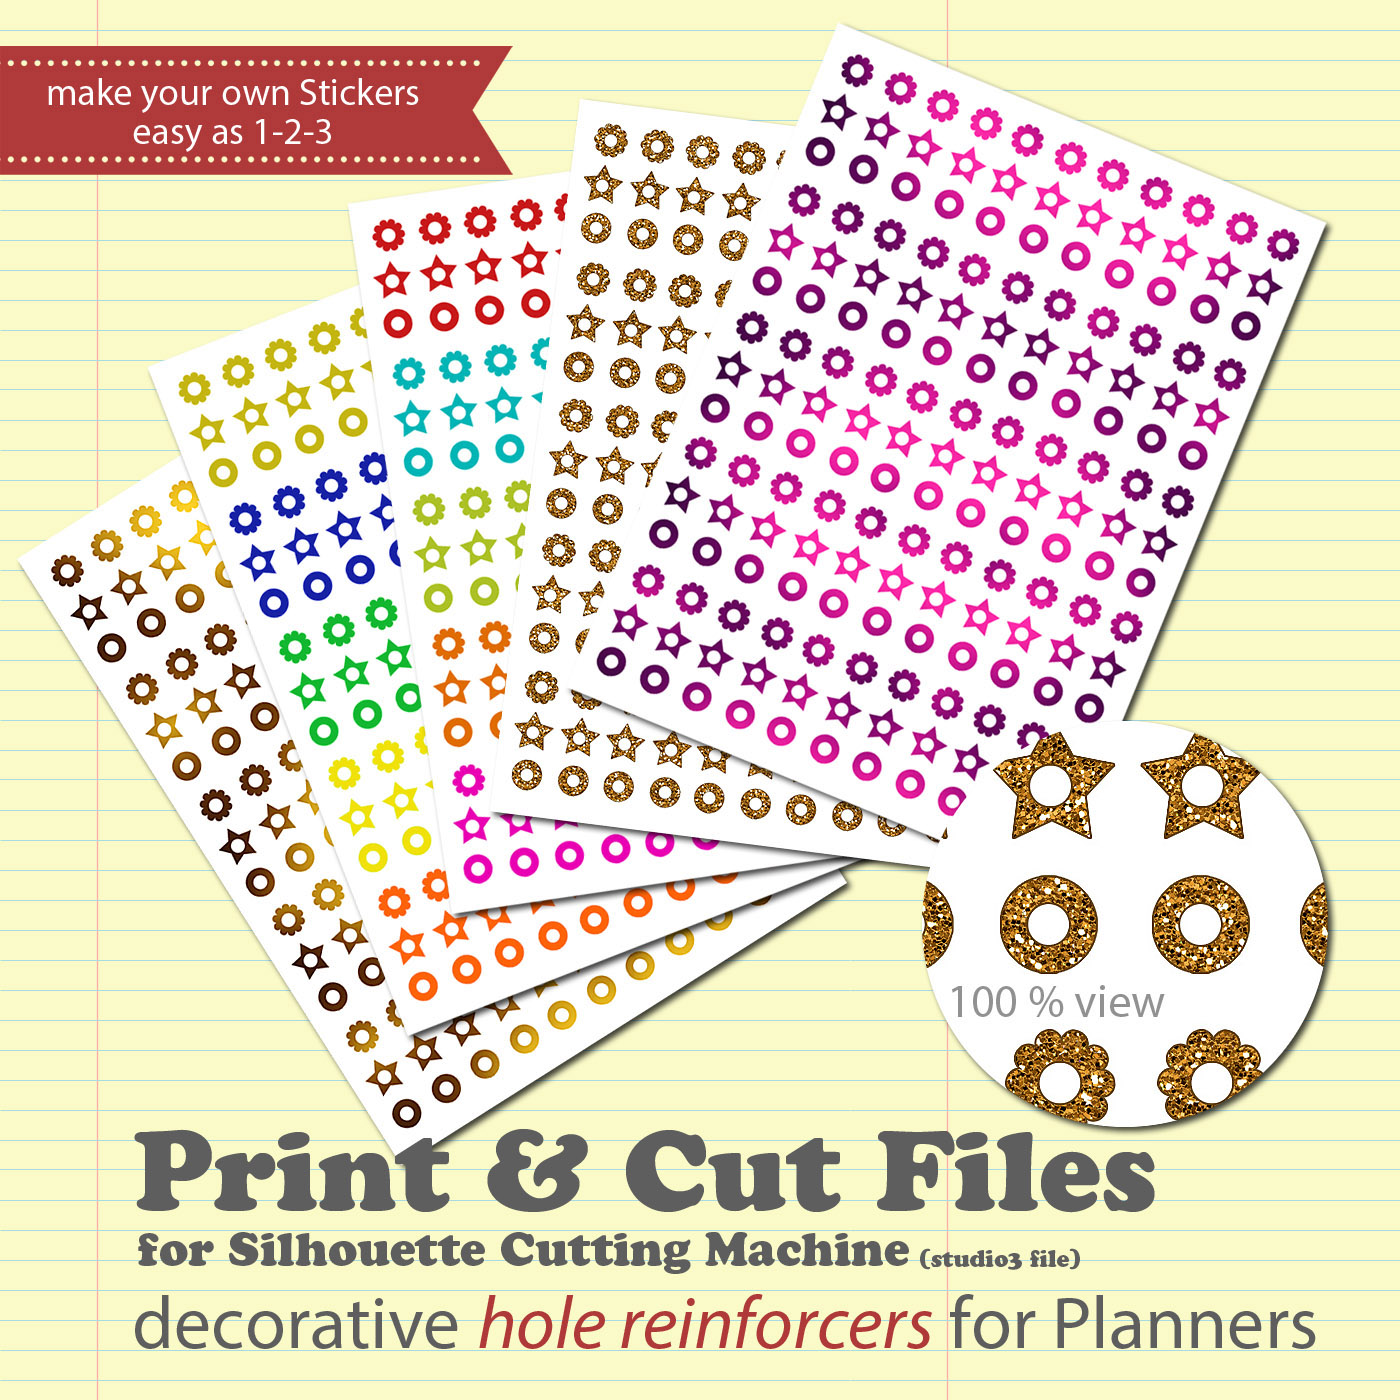 Free Download: DIY Planner Sticker Print & Cut File for Silhouette.